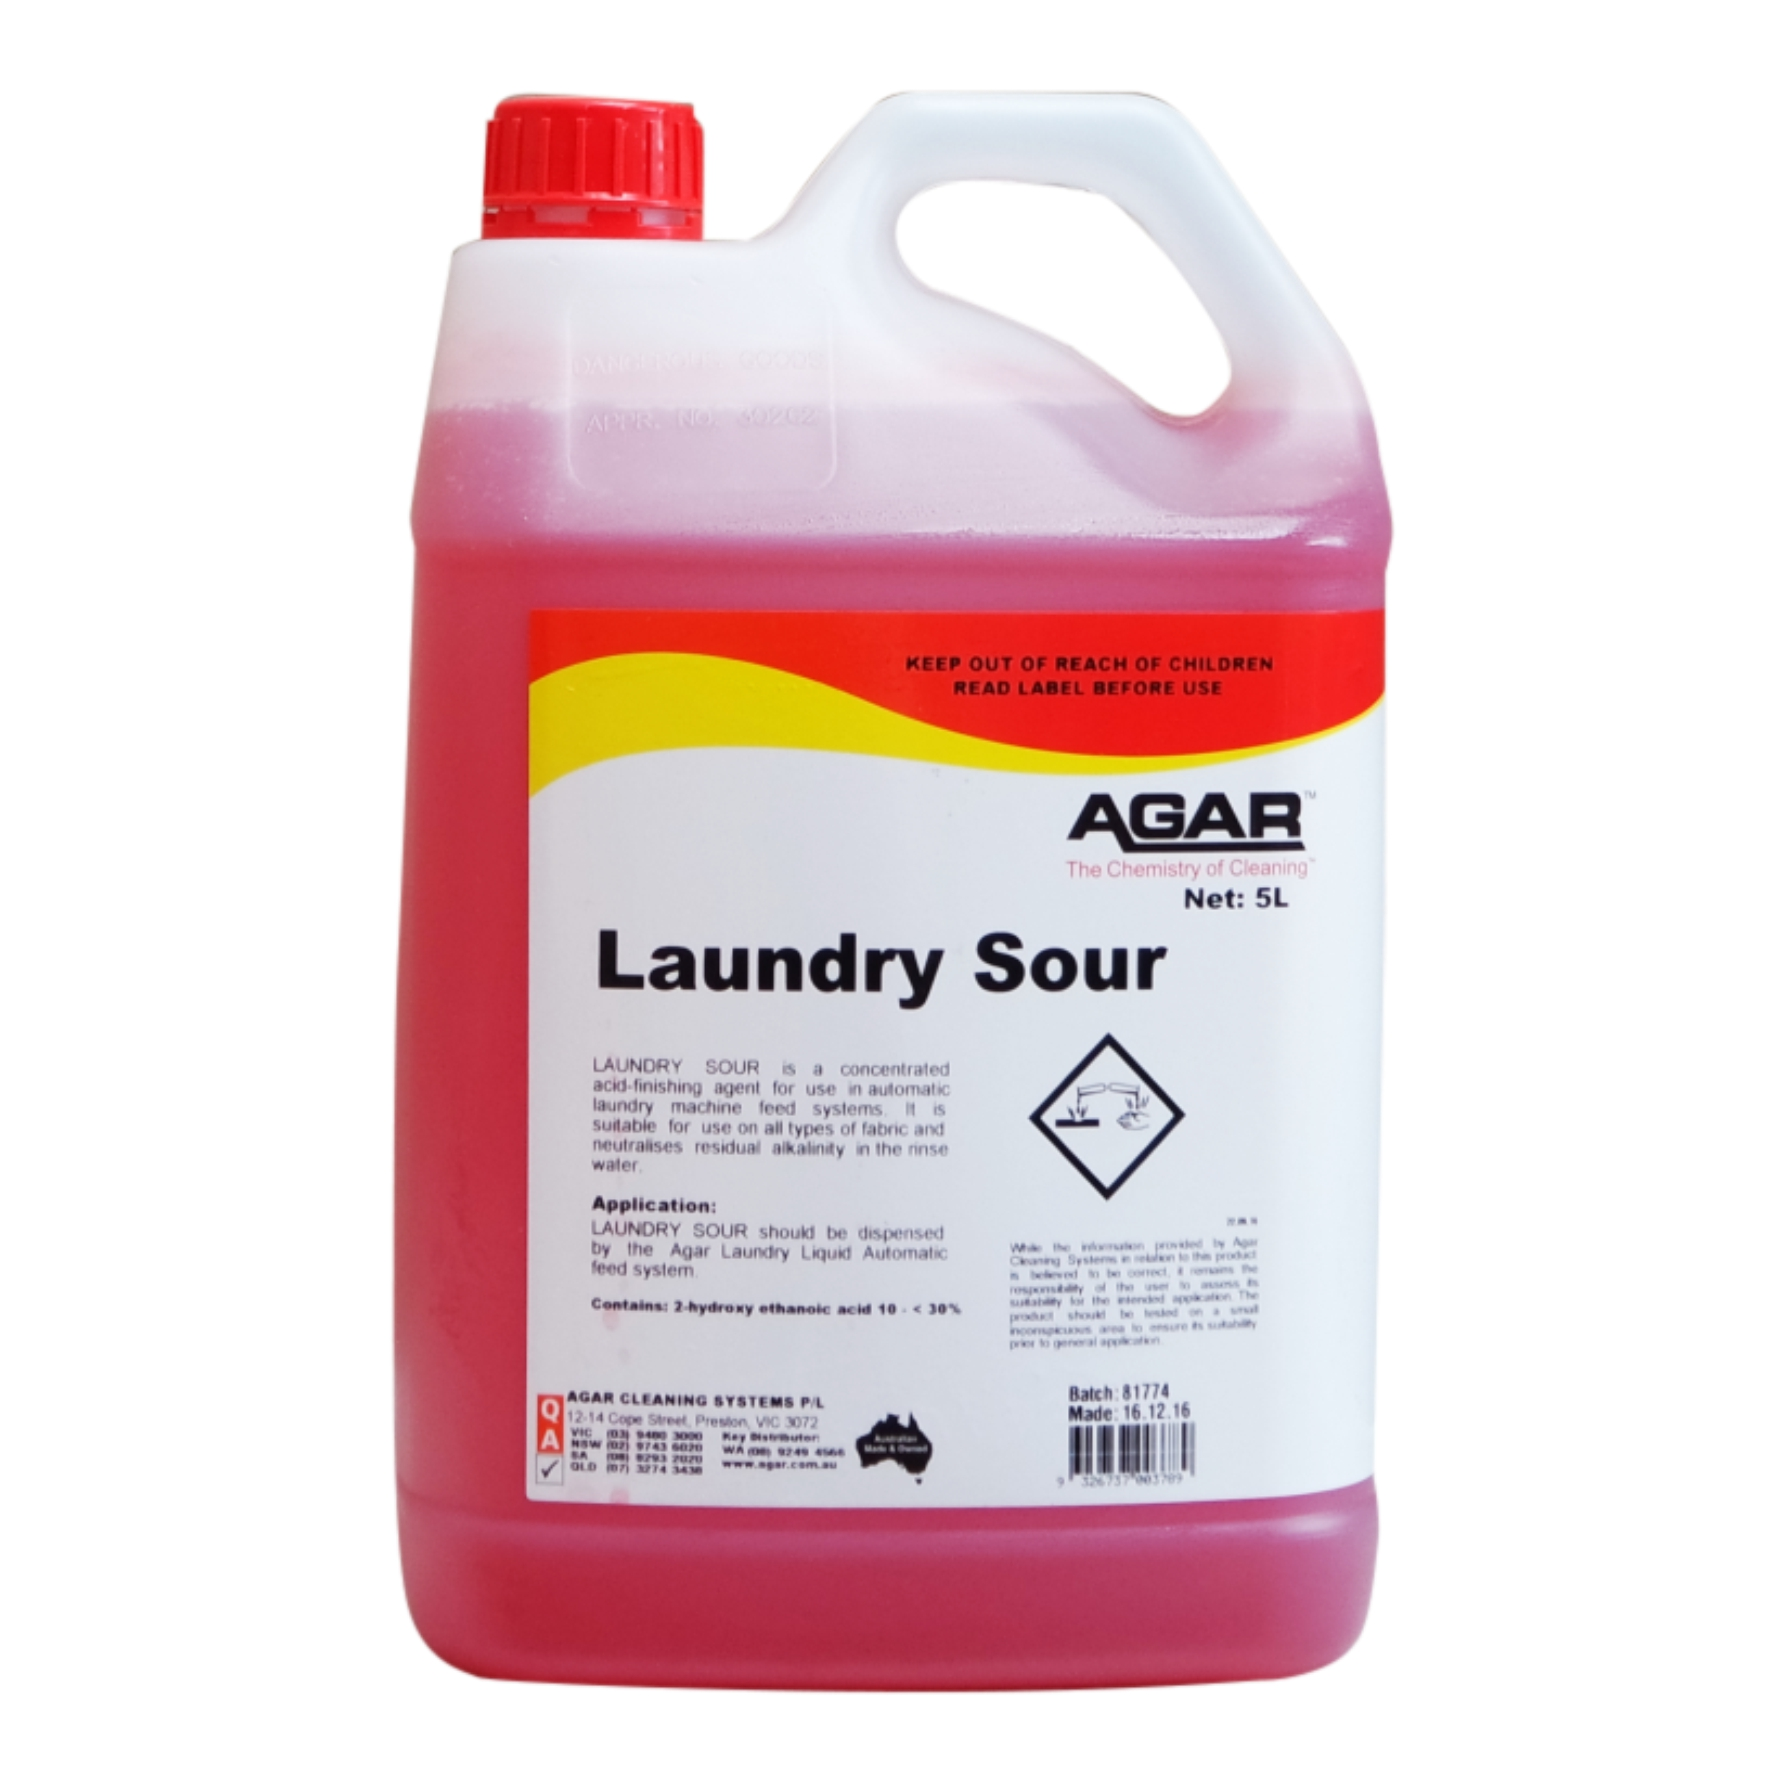 Laundry Sour Agar Cleaning Systems